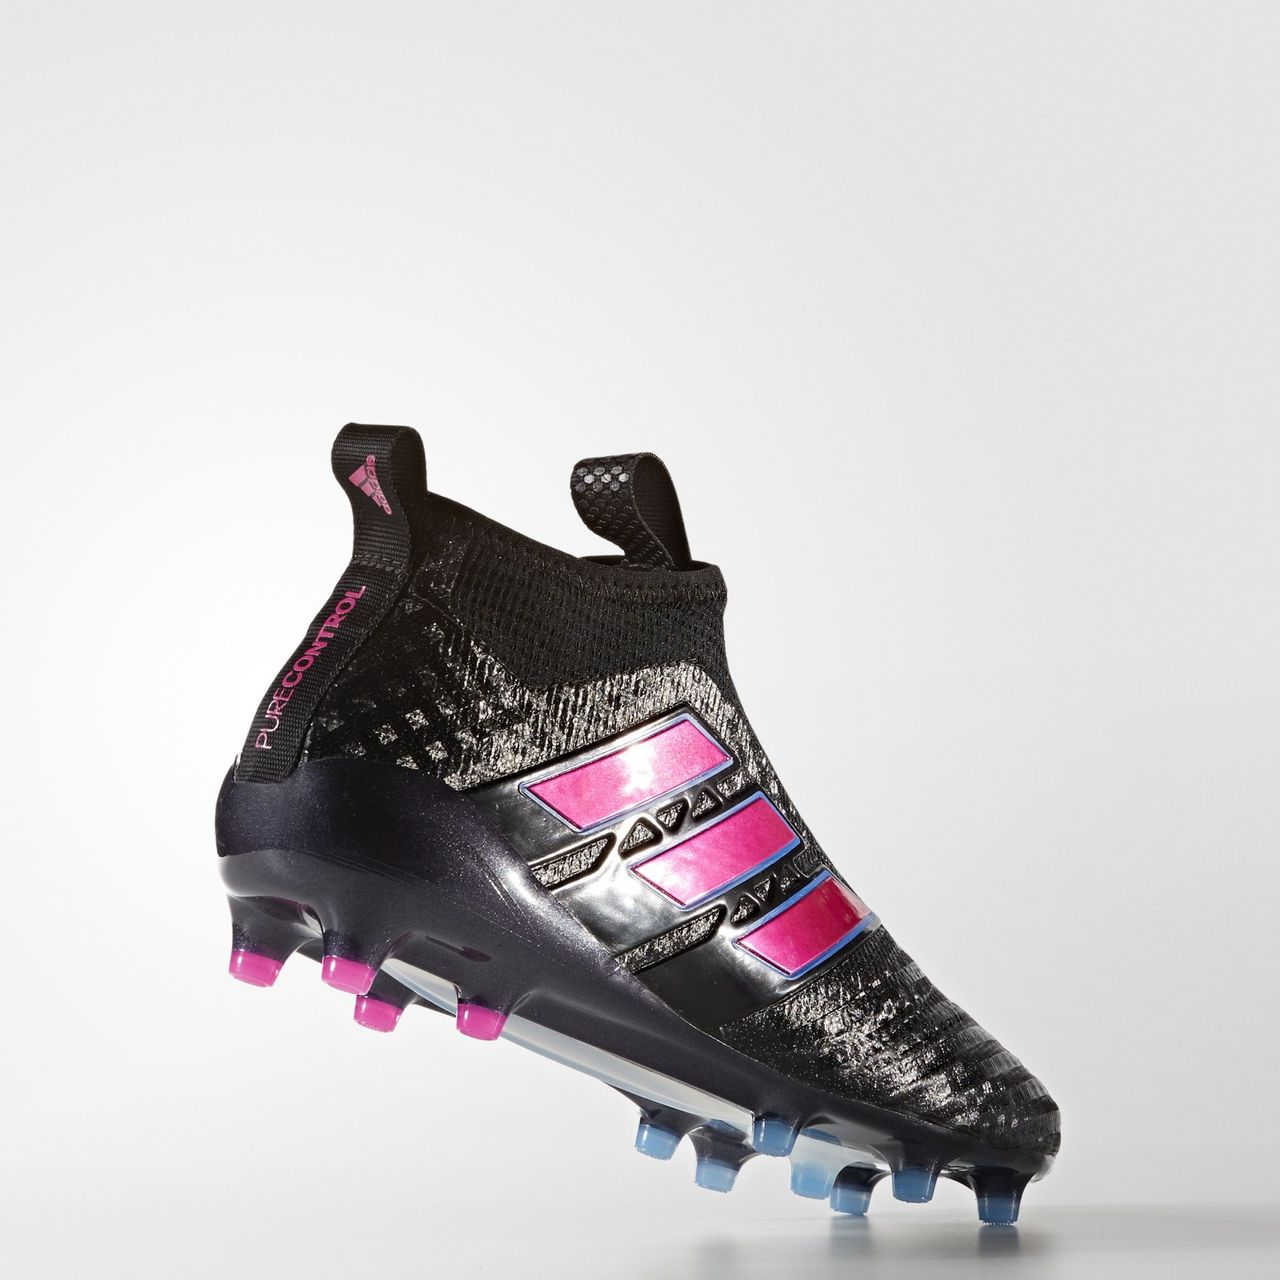 buy online e9b62 e796a canada adidas ace 16.1 primeknit fg ag solar green shock pink core black  dcae2 579bc discount code for click to enlarge image ...